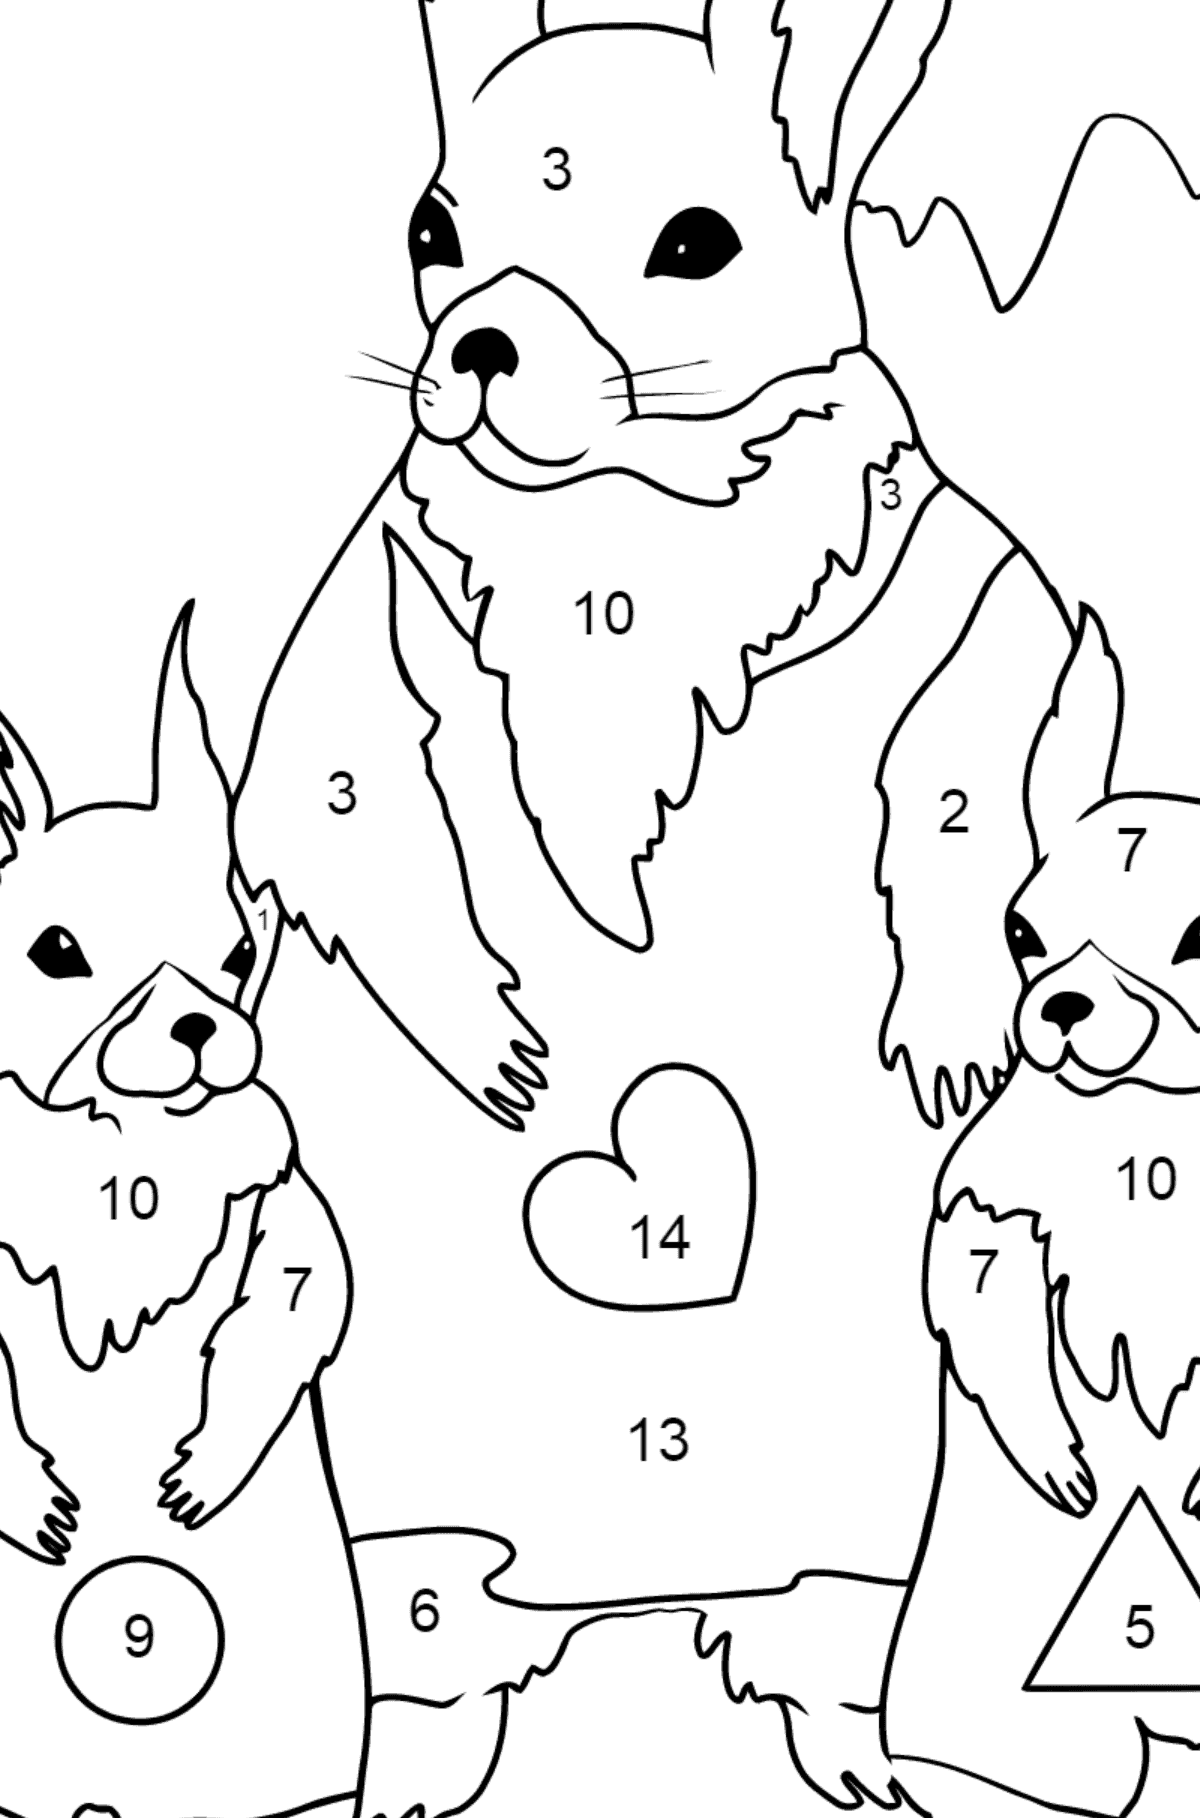 Spring Coloring Page - Beautiful Squirrels for Children  - Color by Number